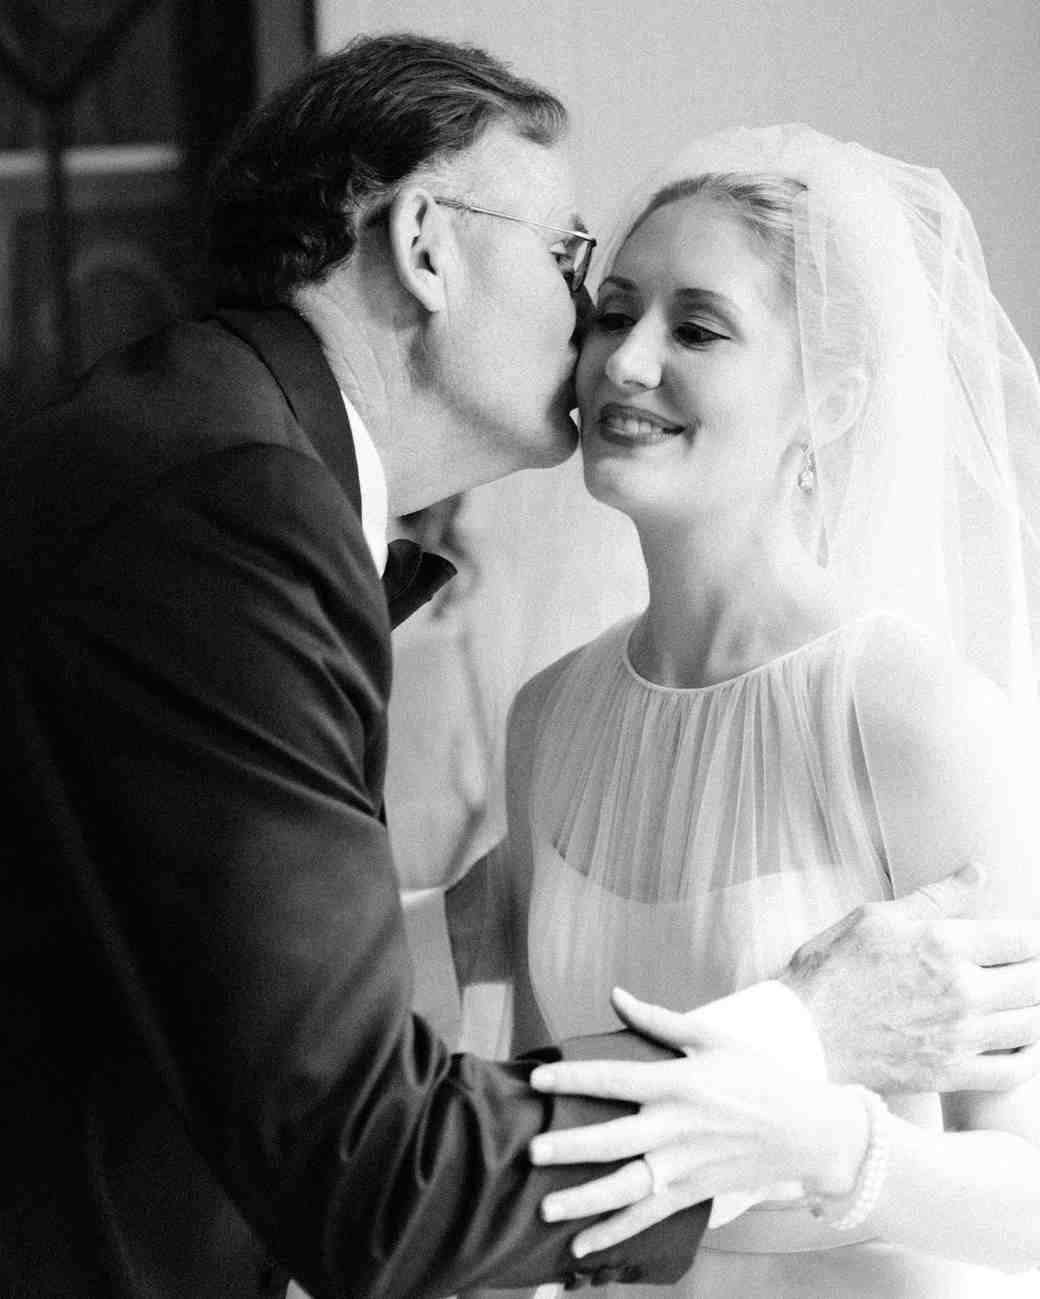 Father-Daughter Wedding Photos, Dad and Daughter Kiss